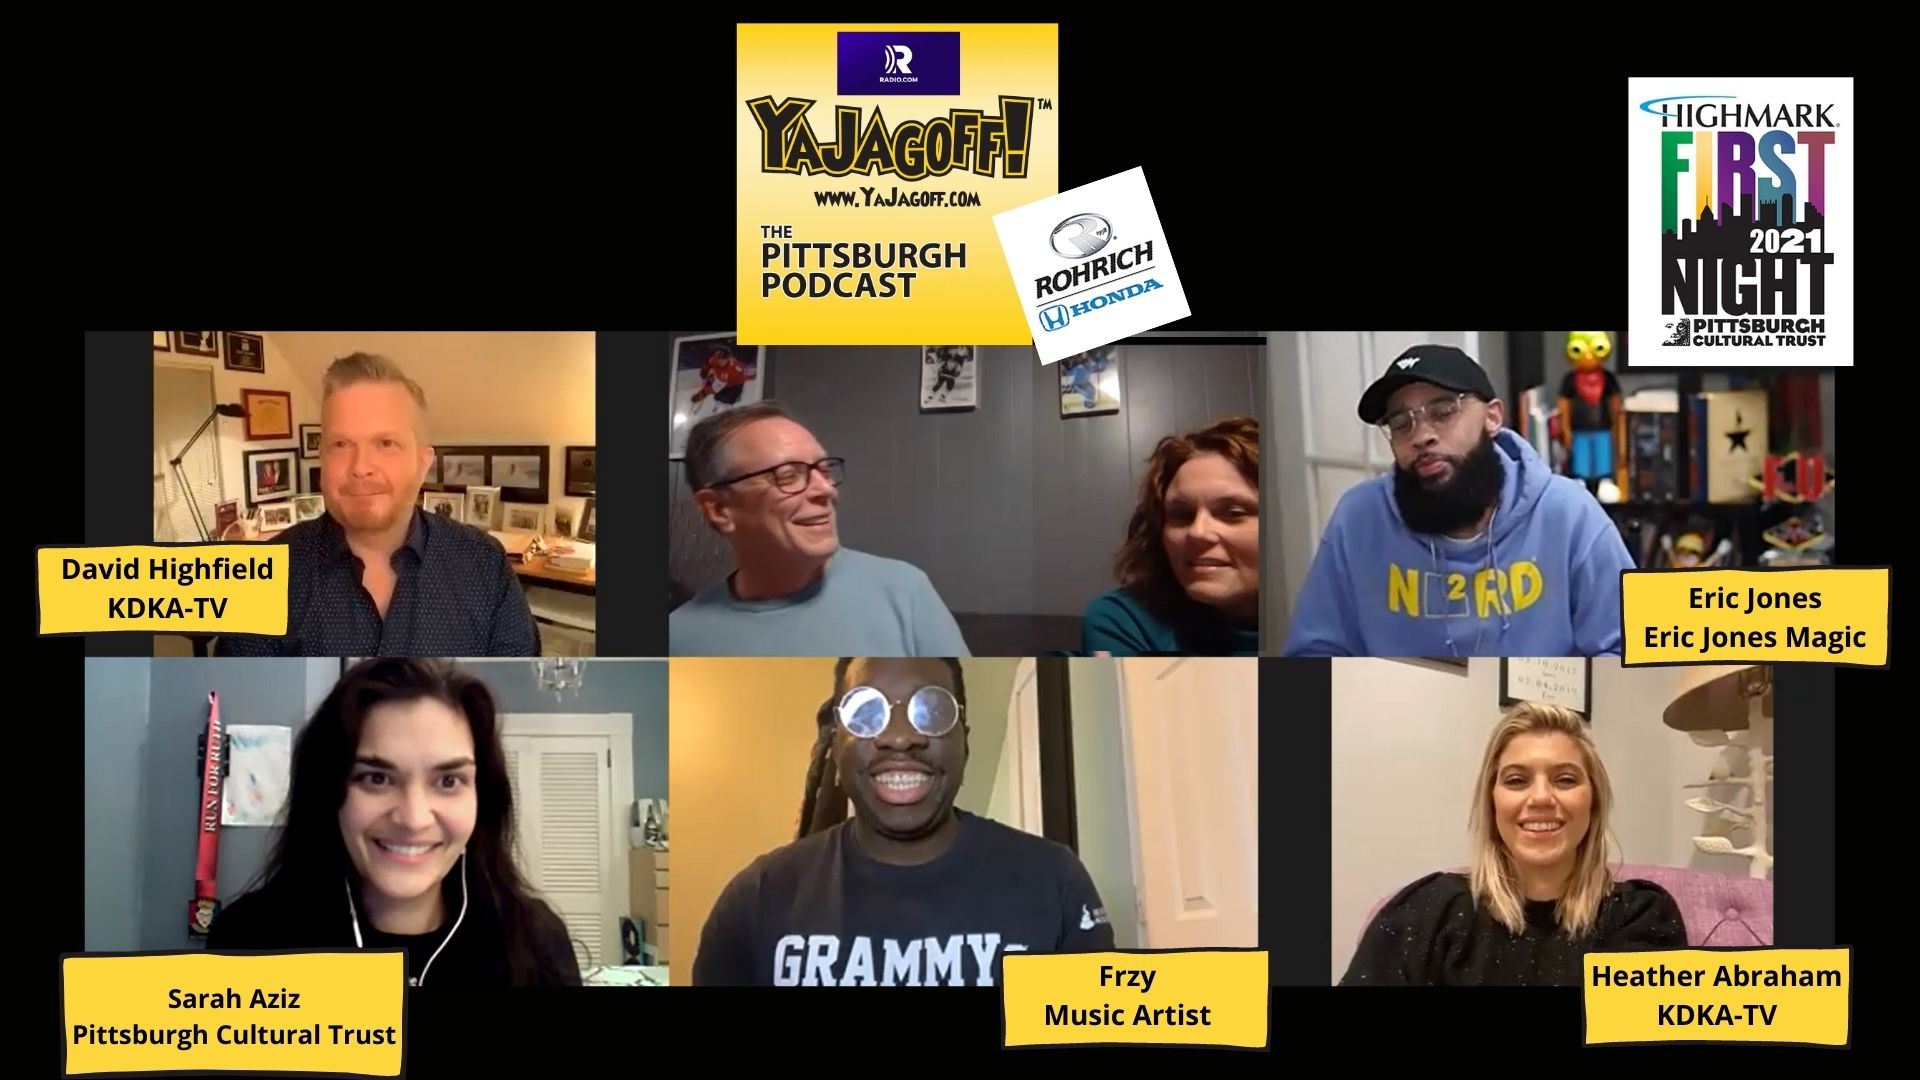 YaJagoff Podcast Pittsburgh Podcast Guests Collage